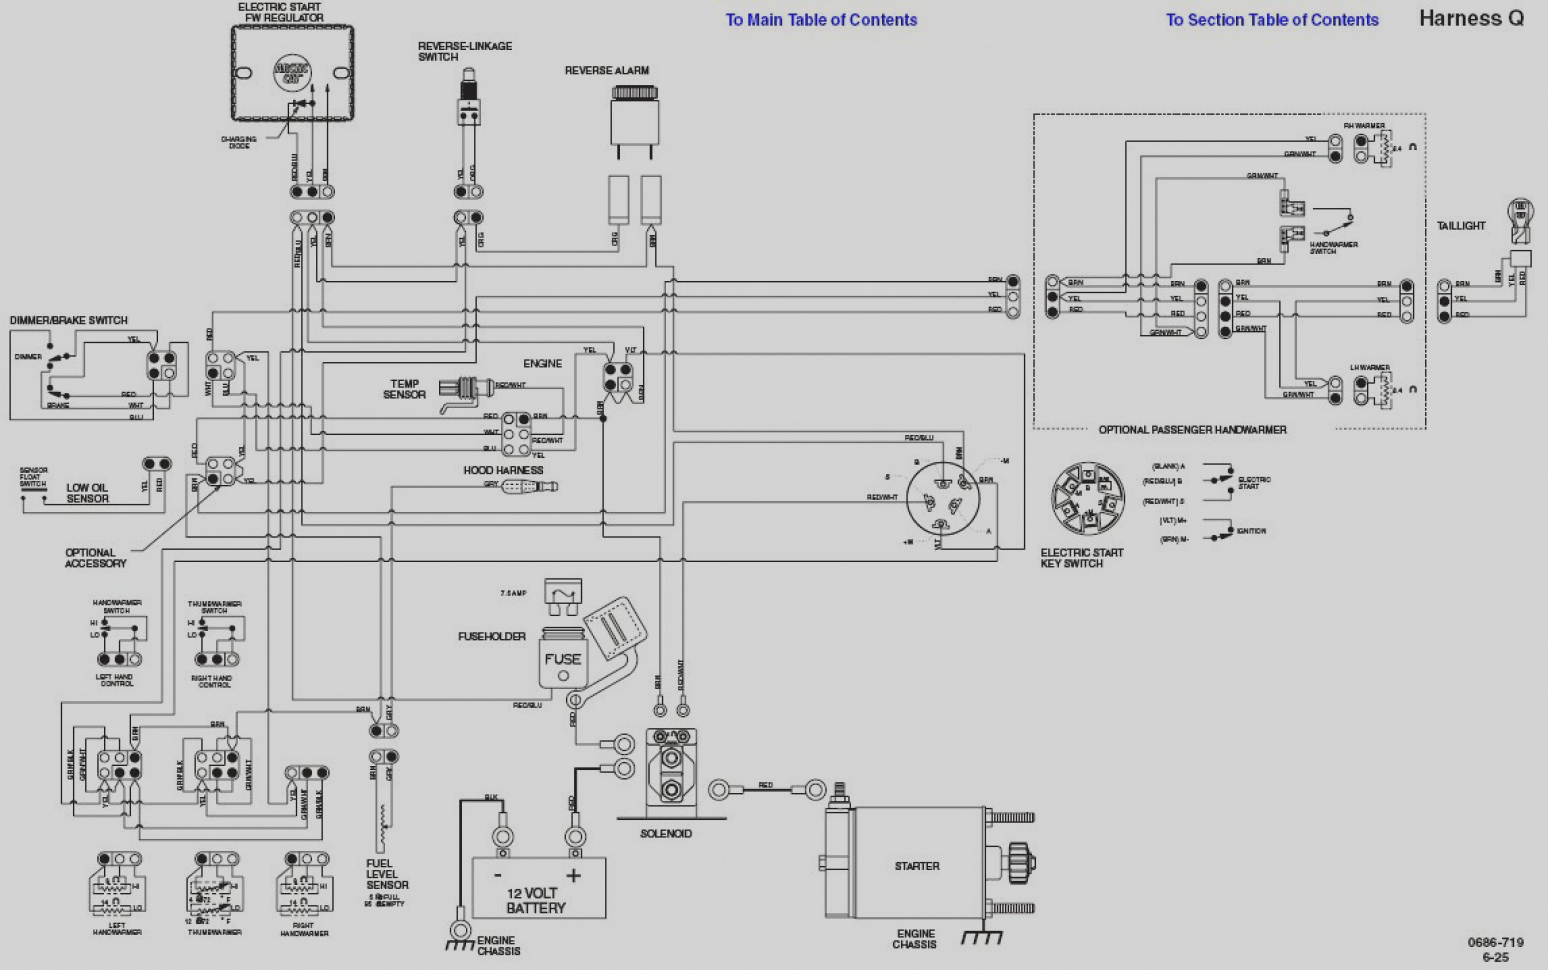 03 Polari Predator 500 Wiring Diagram